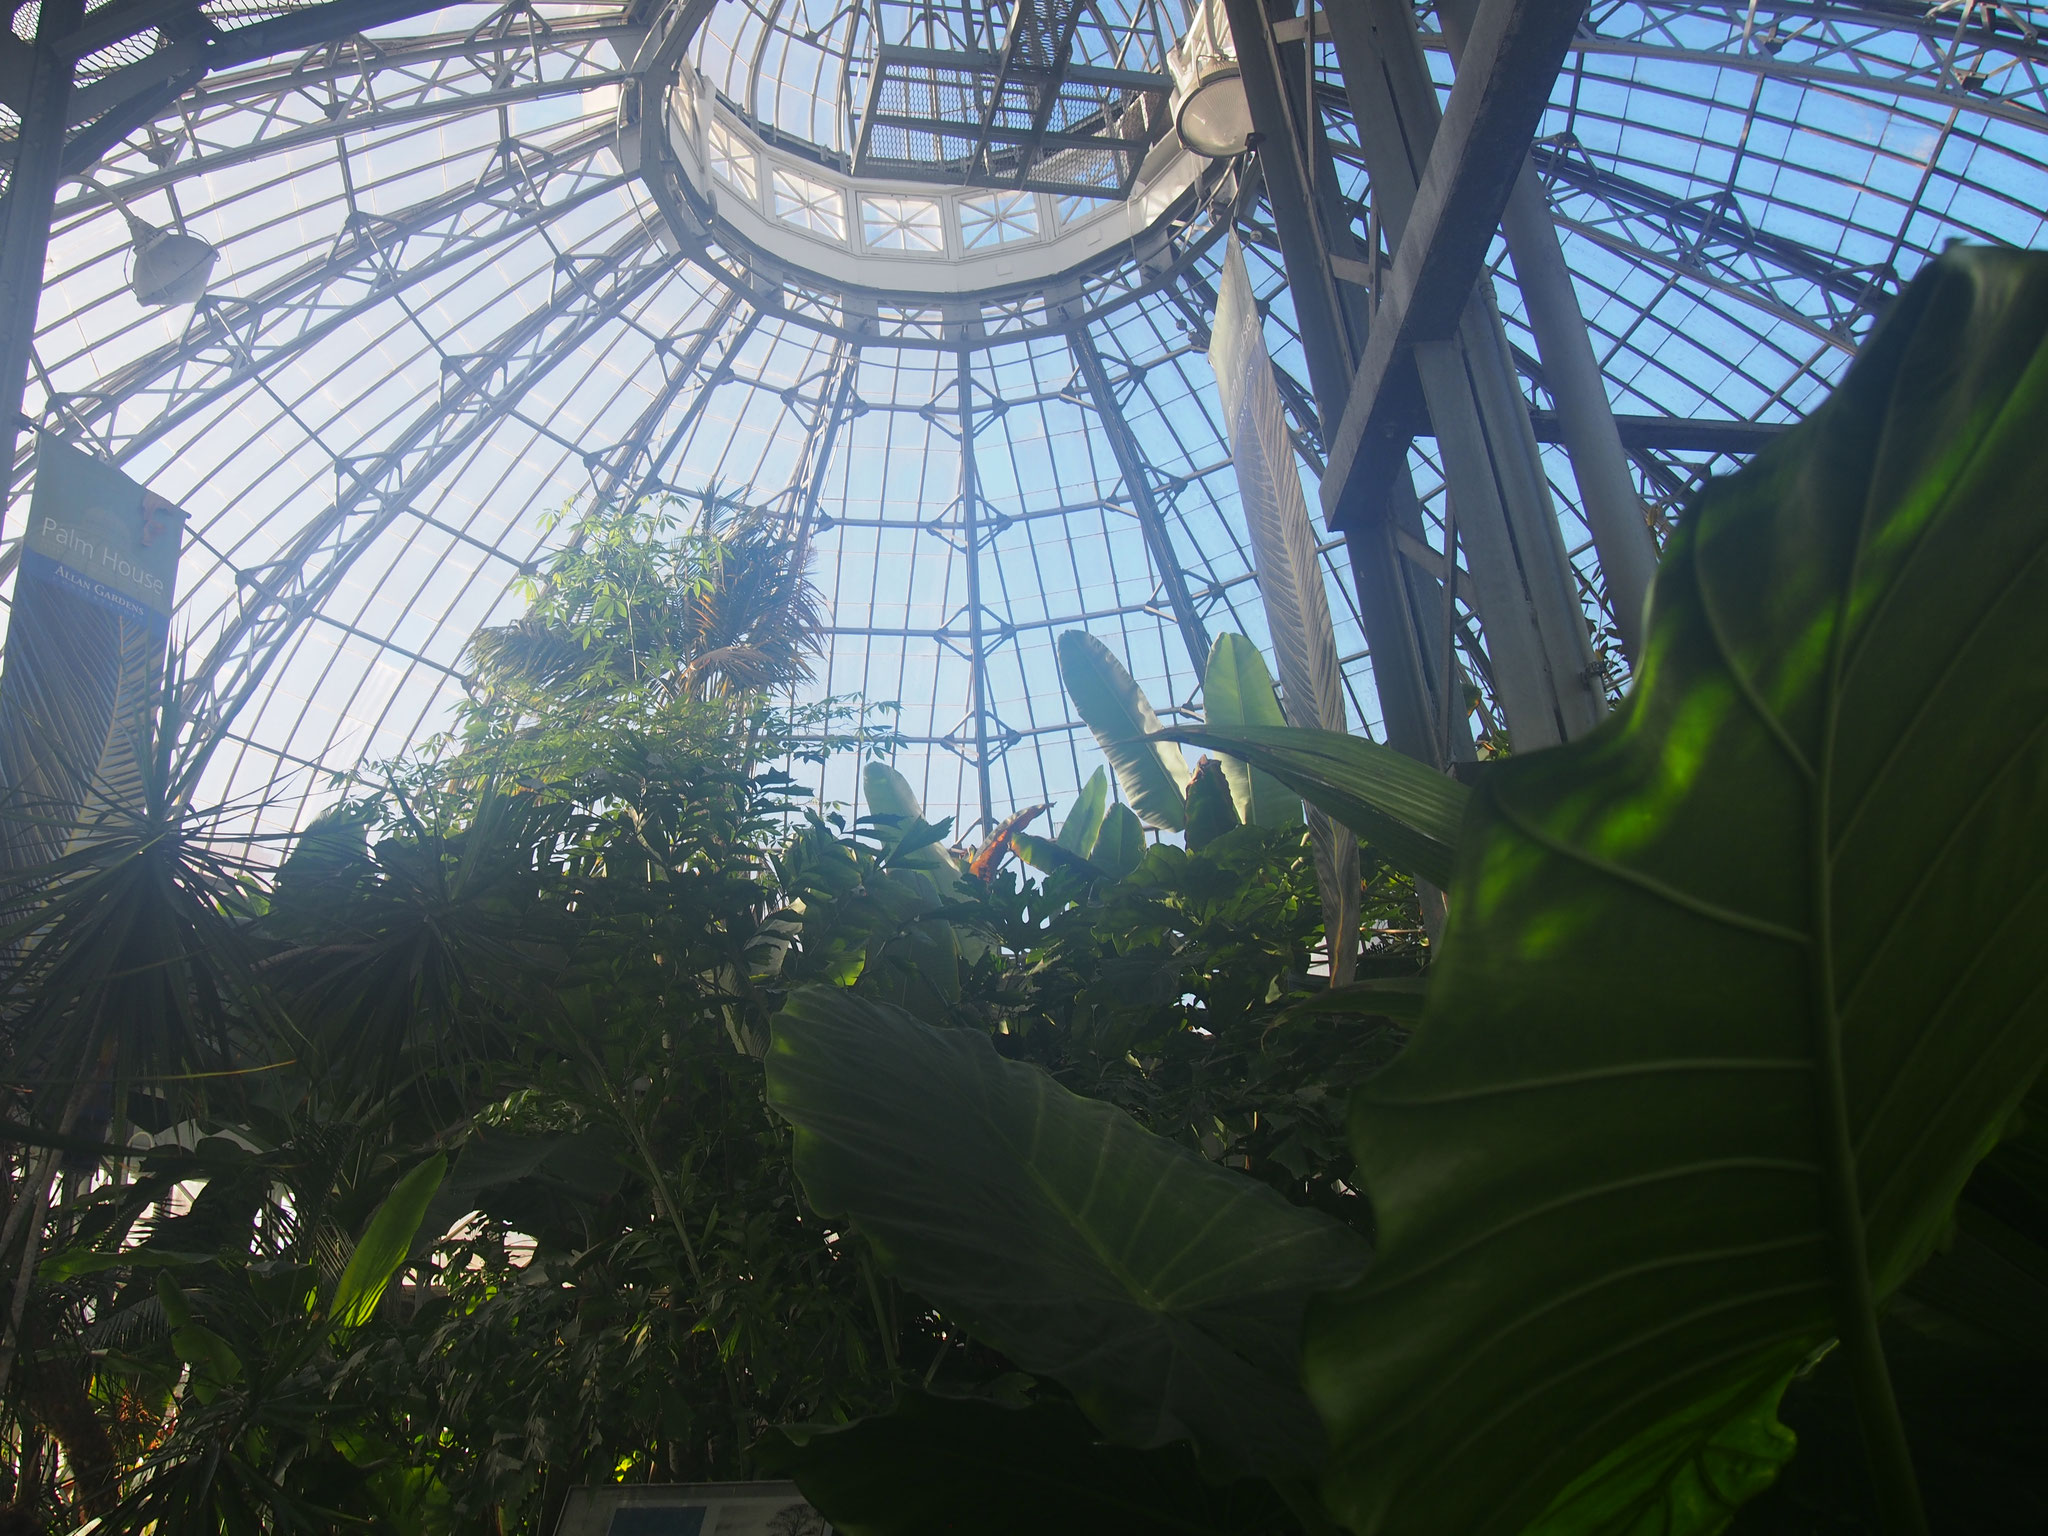 Photo of Allan Gardens Conservatory built in 1858 taken by SAE KIMURA